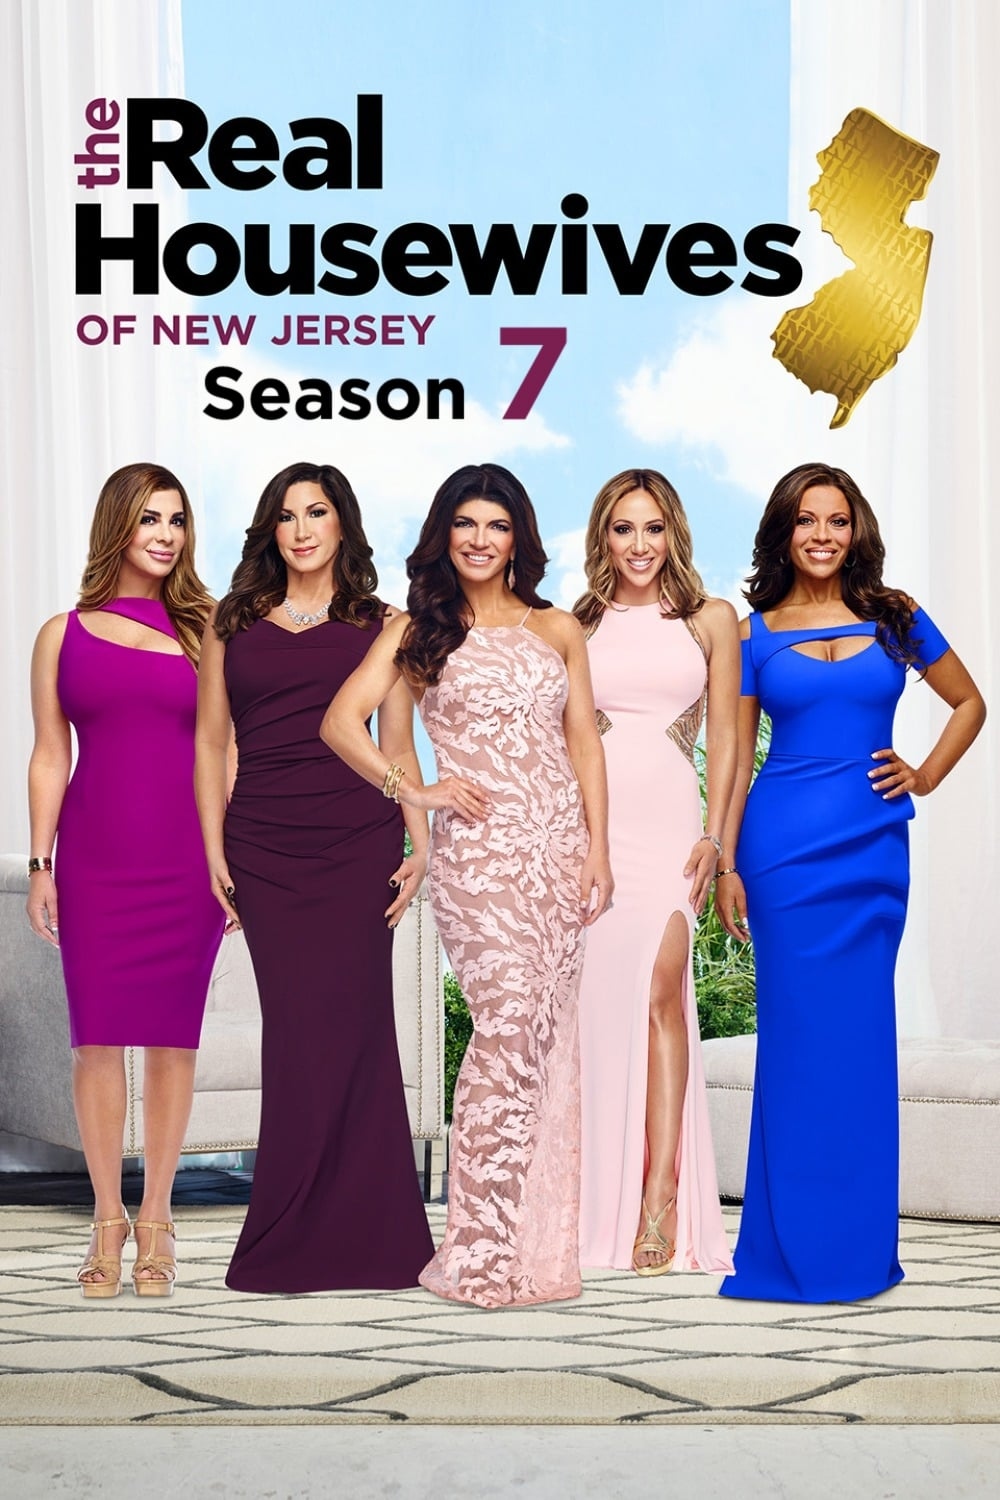 The Real Housewives of New Jersey Season 7